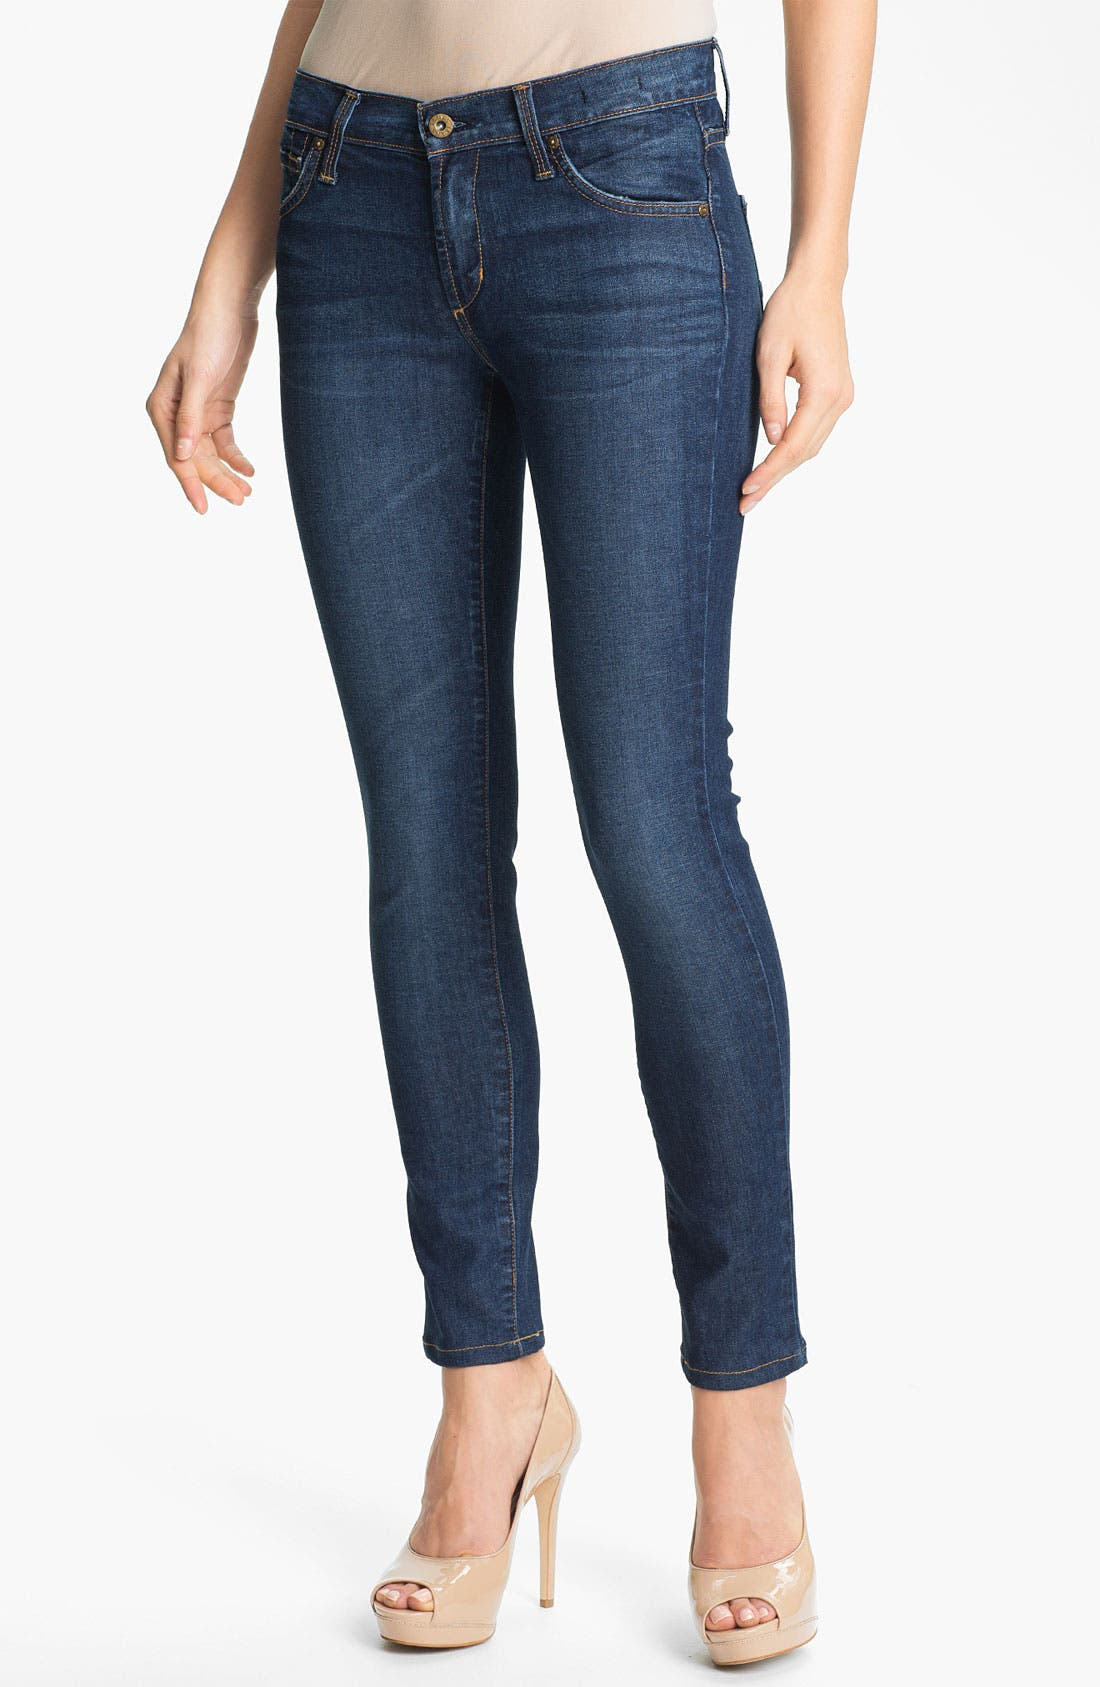 Main Image - James Jeans Skinny Stretch Jeans (Havana) (Petite) (Online Only)